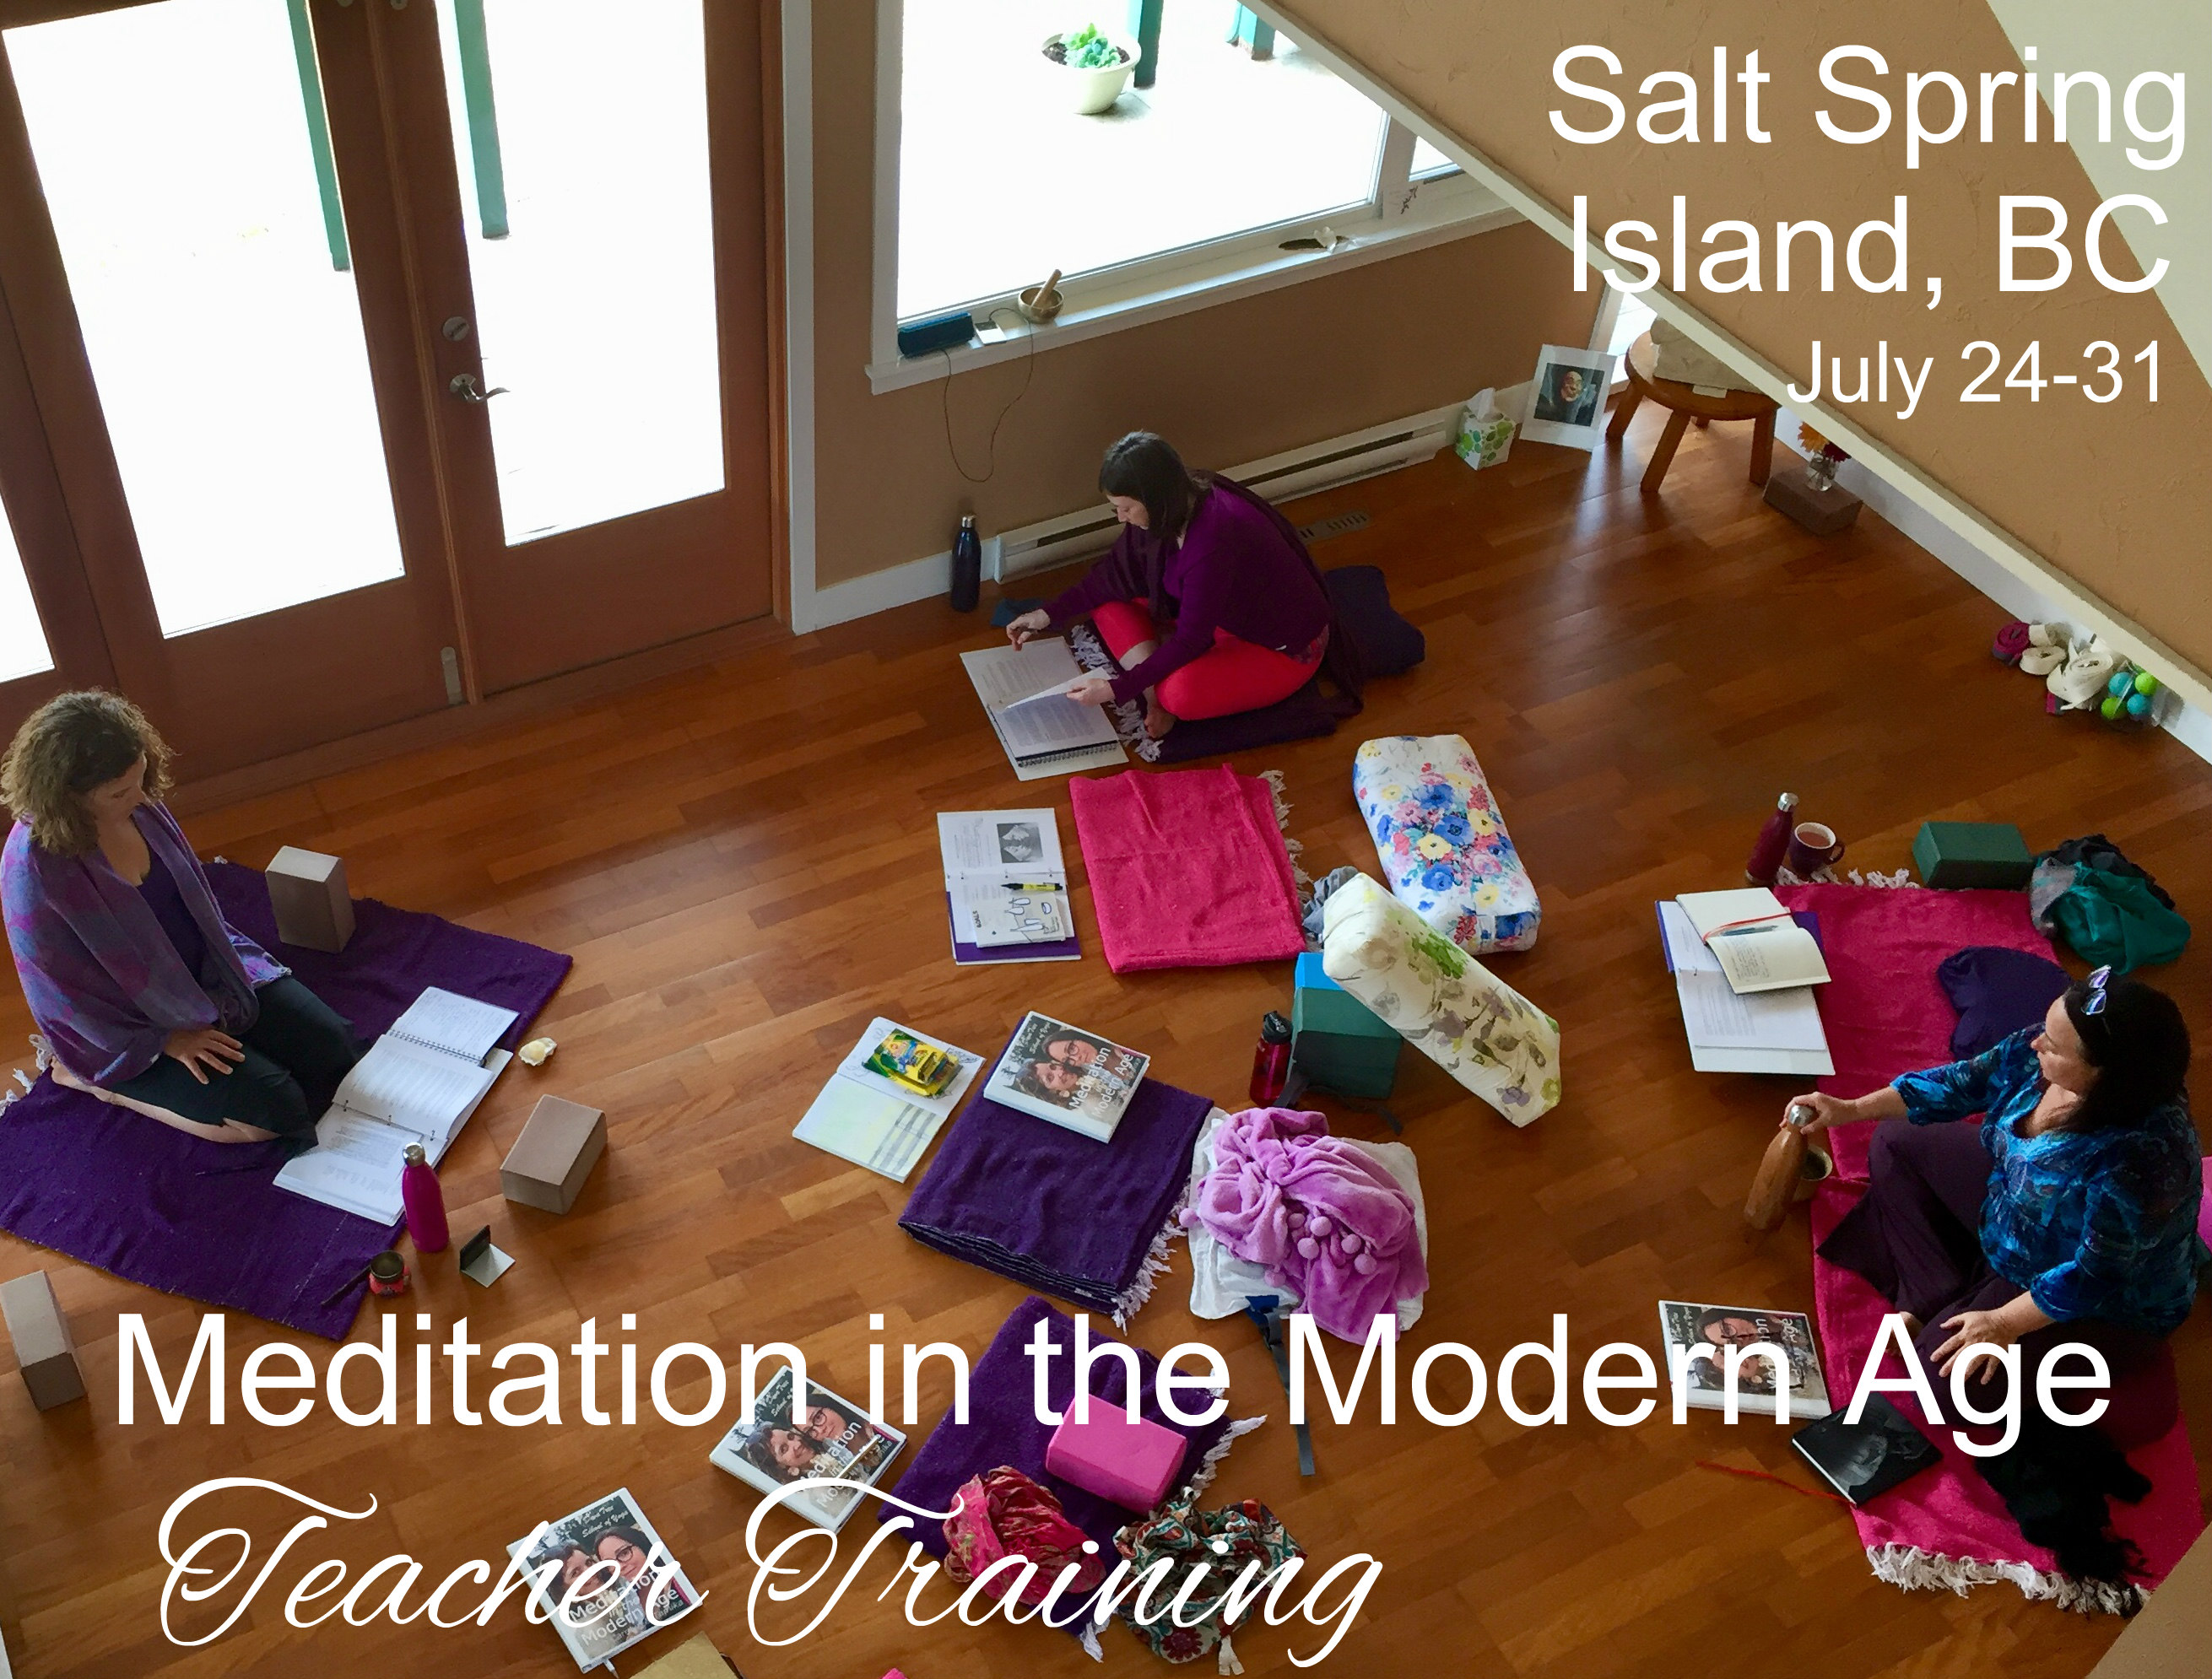 Teaching Meditation in the Modern Age on Salt Spring Island, July 24-31, 2019